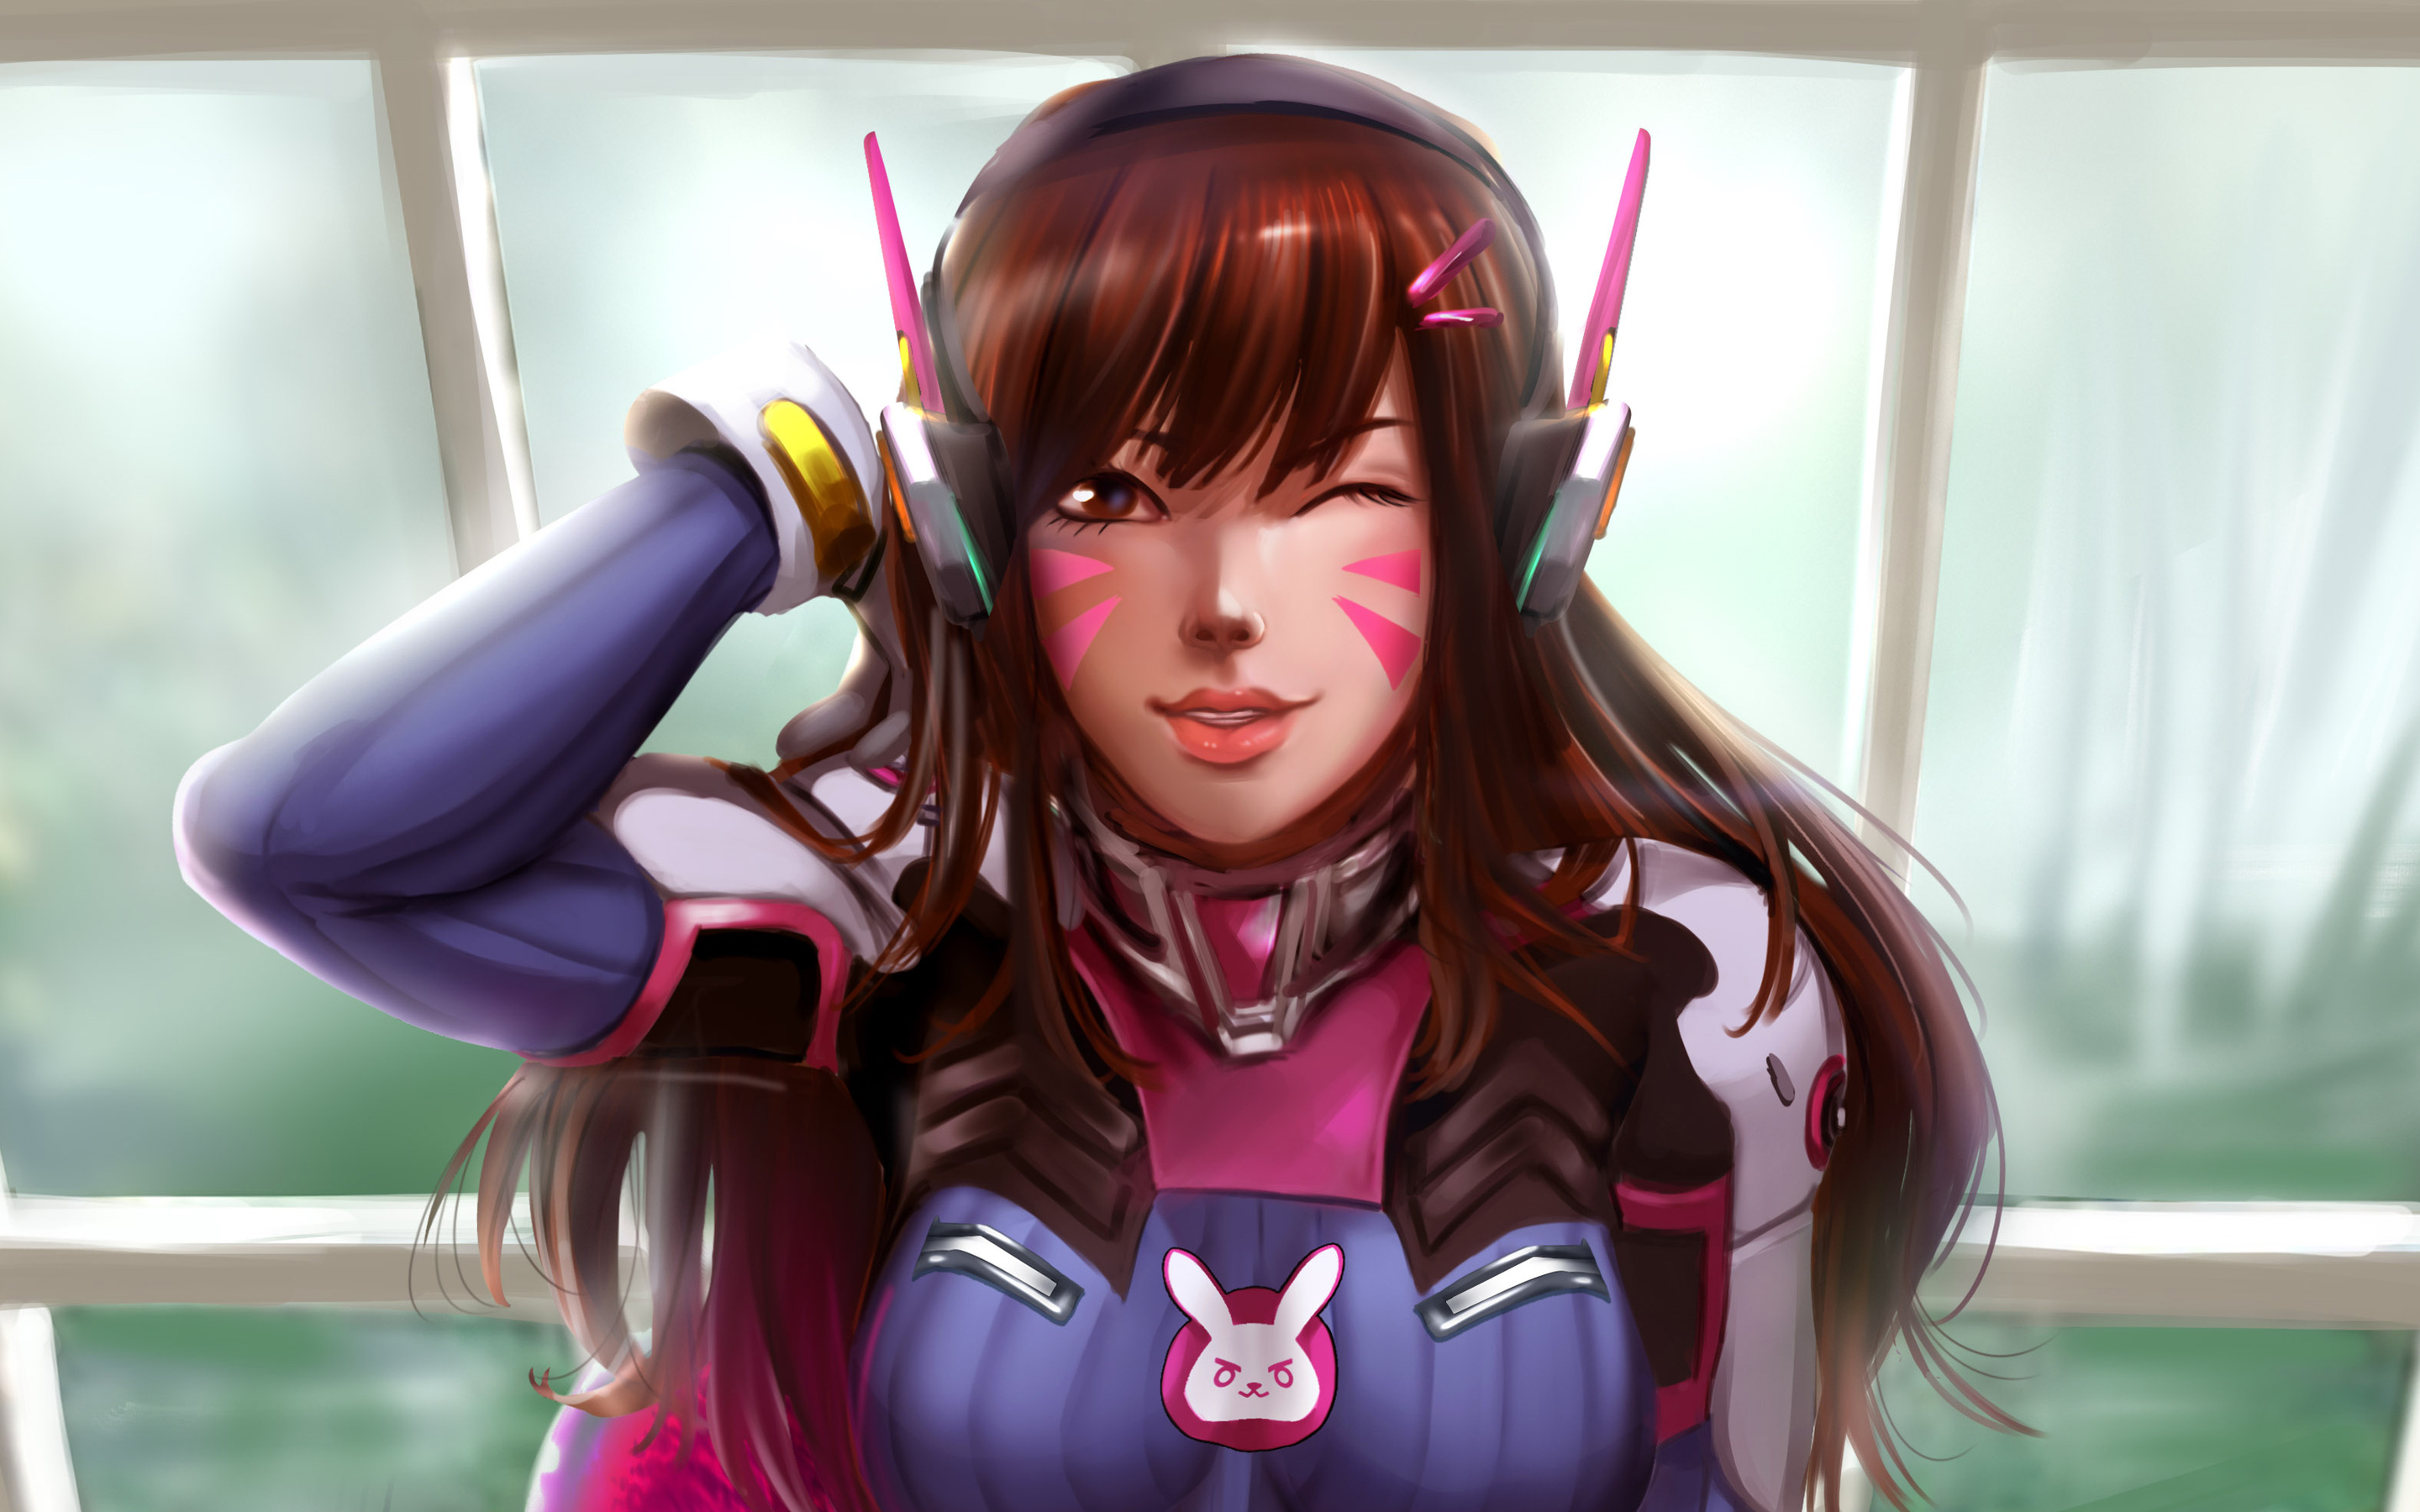 dva-overwatch-art-new-u5.jpg